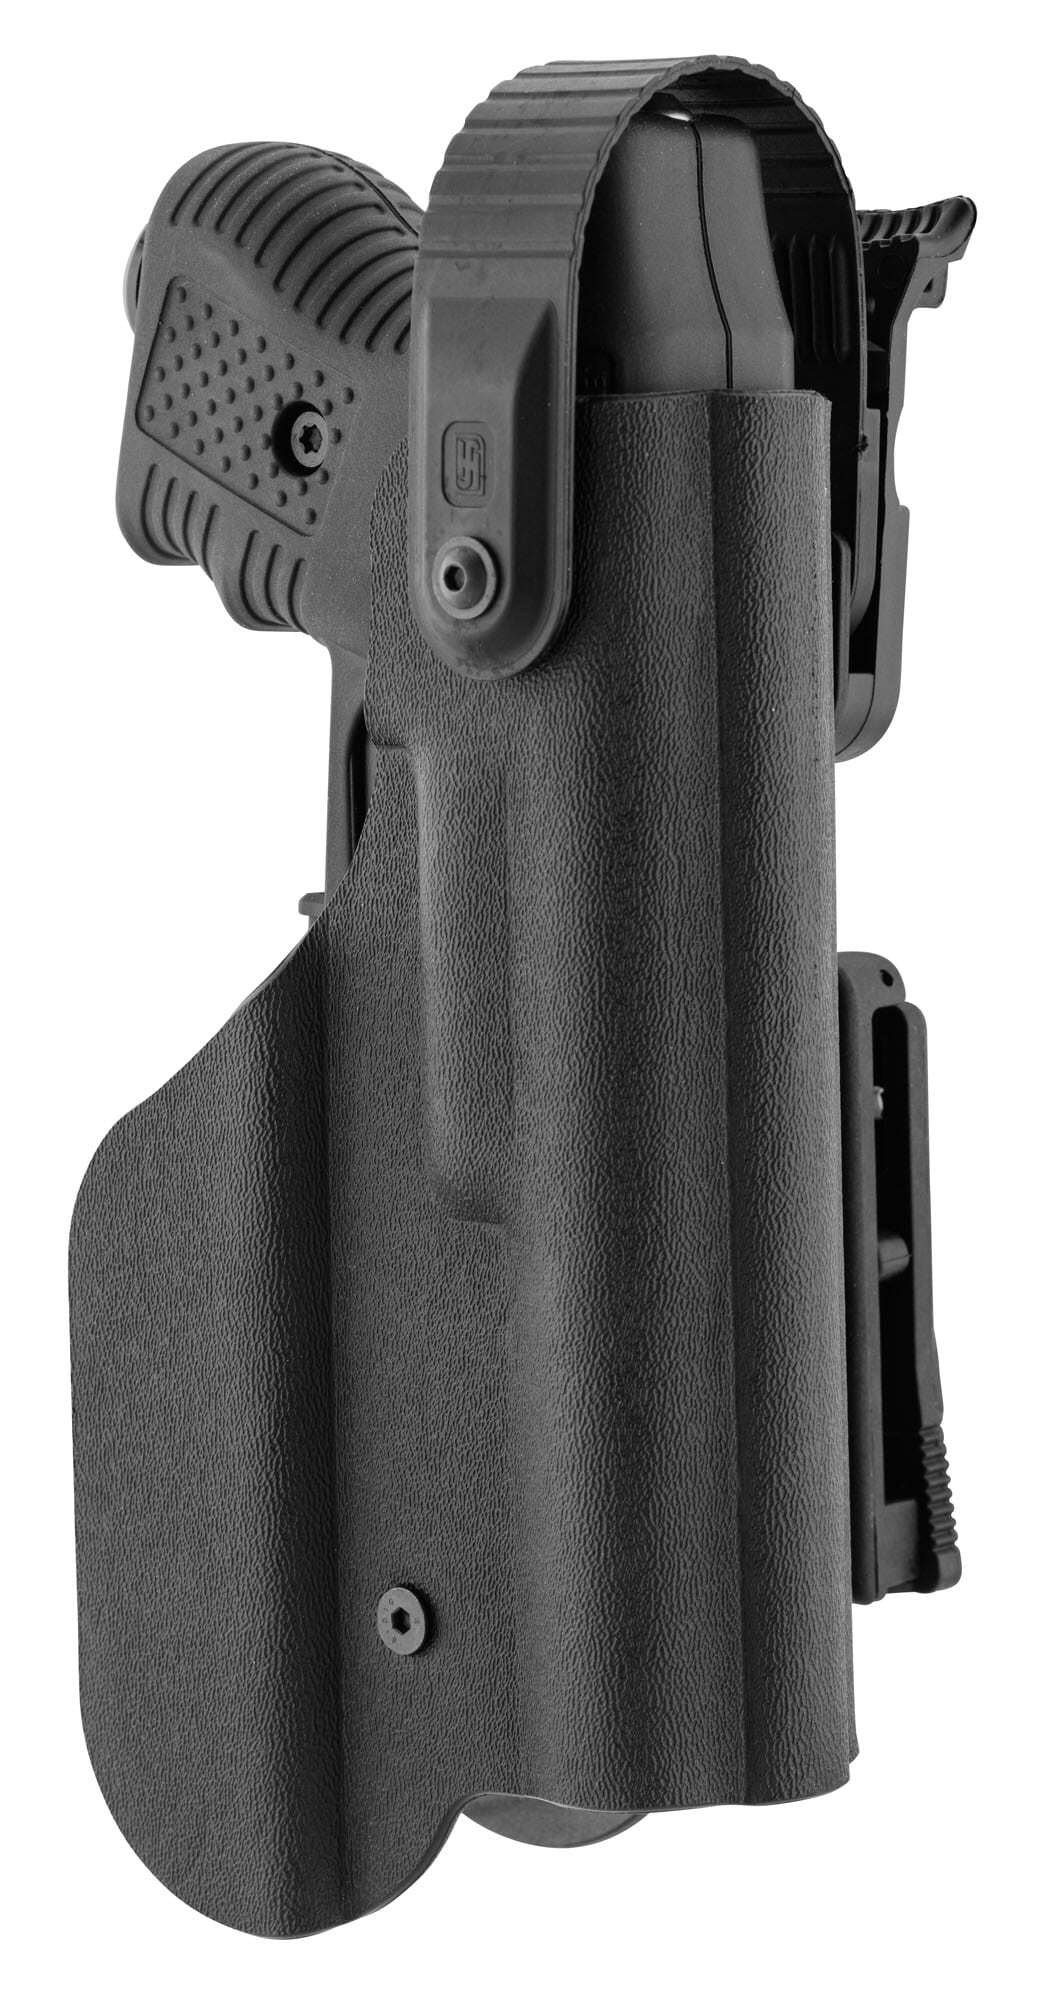 JPX390-4-Holster pour JPX - Kydex Paladin II avec lampe tactique - JPX400